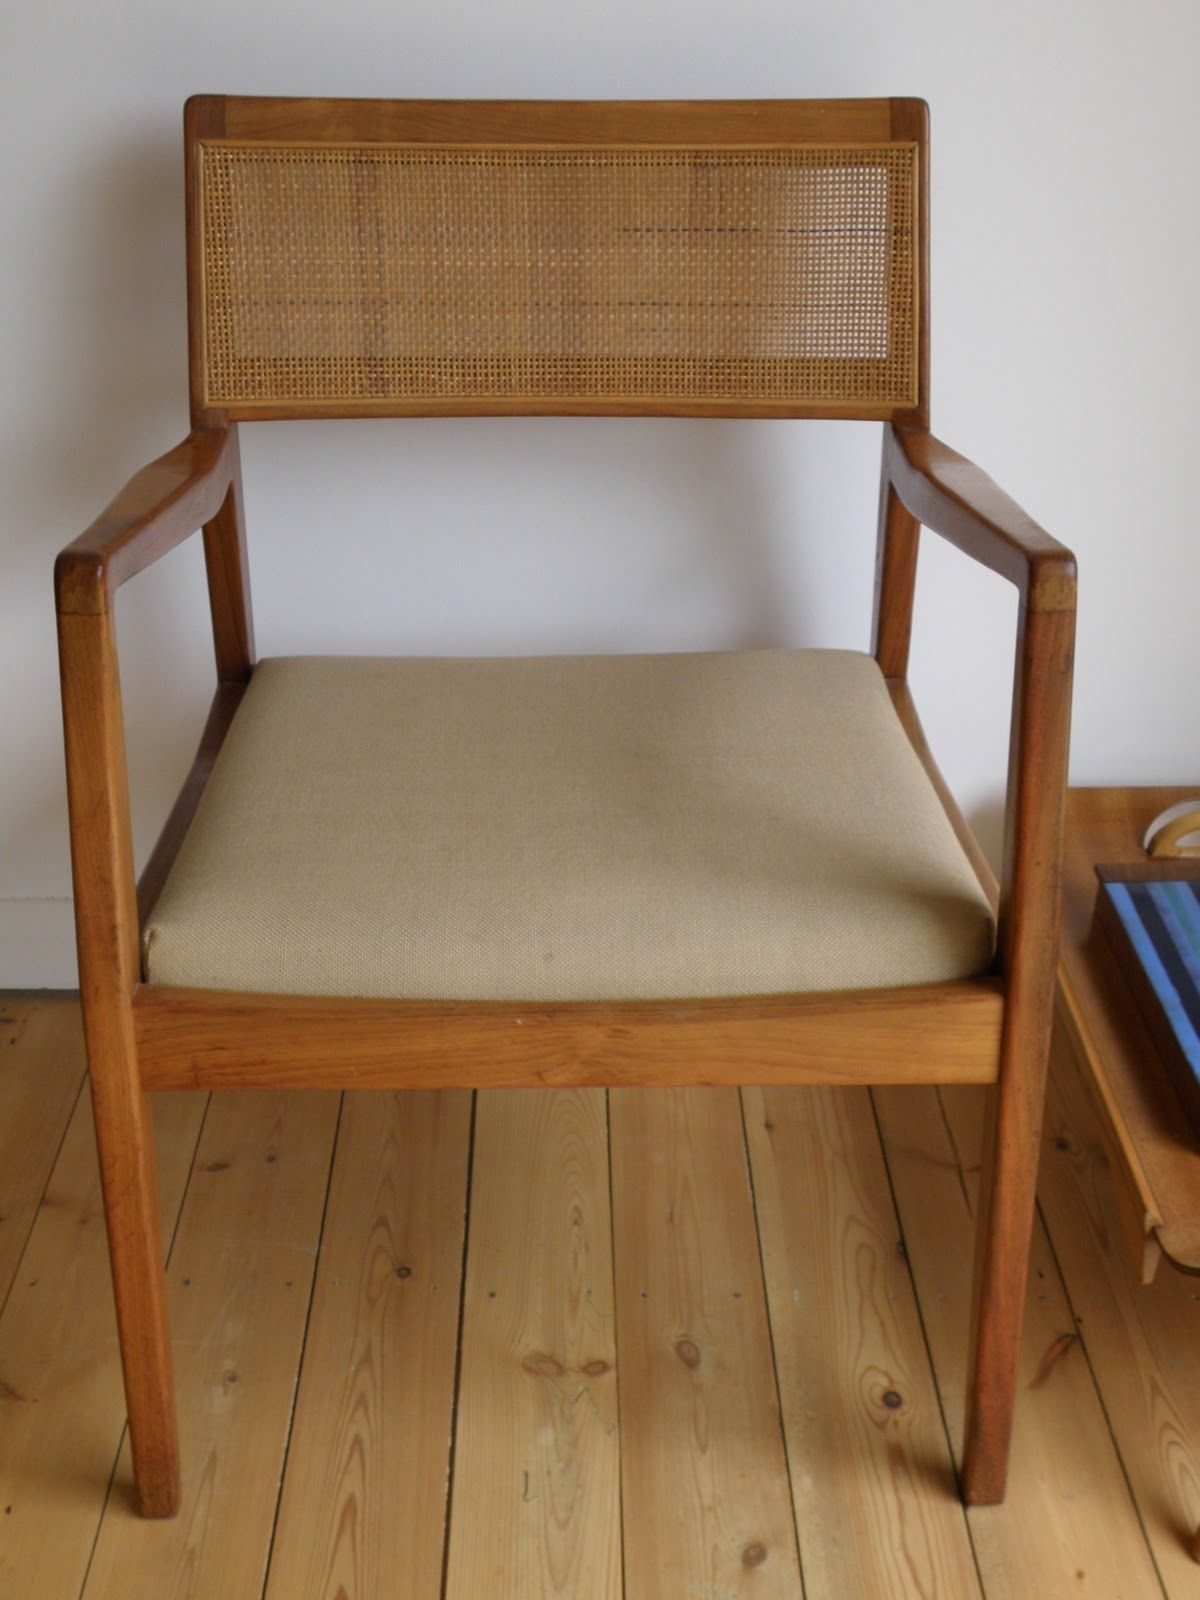 C140 chair by Jens Risom for Jens Risom Design Limited c1960